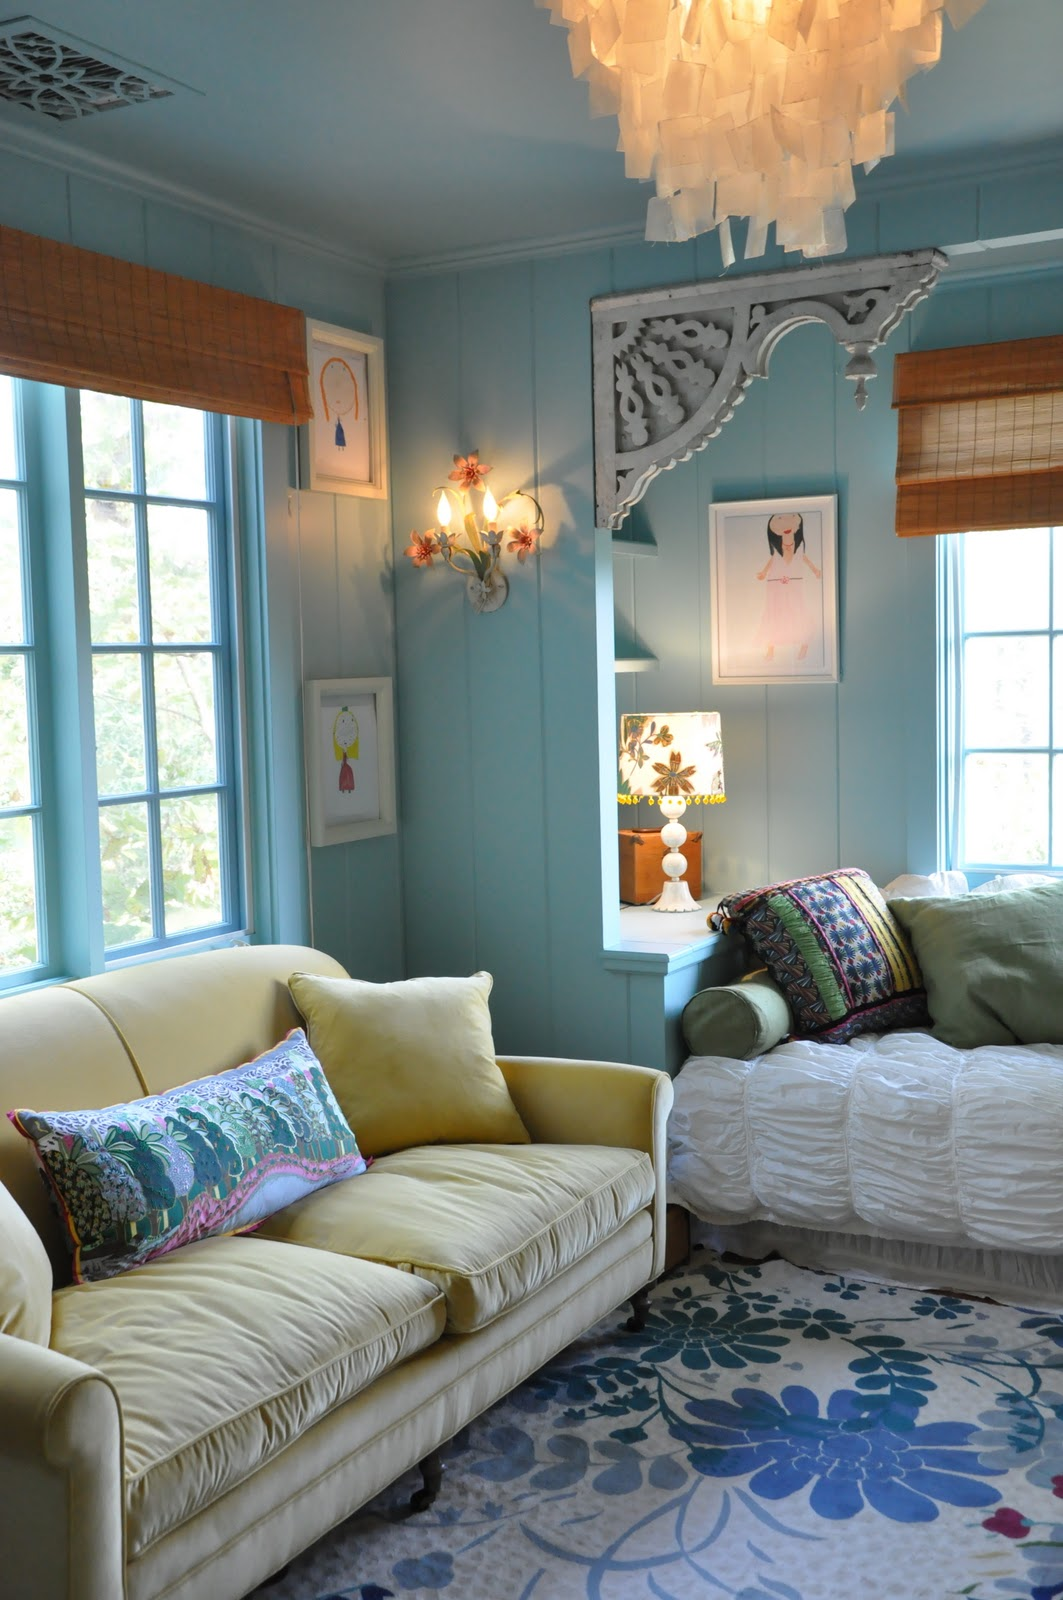 A 10 Year Old's Room by Giannetti Designs...(Via Made by ...